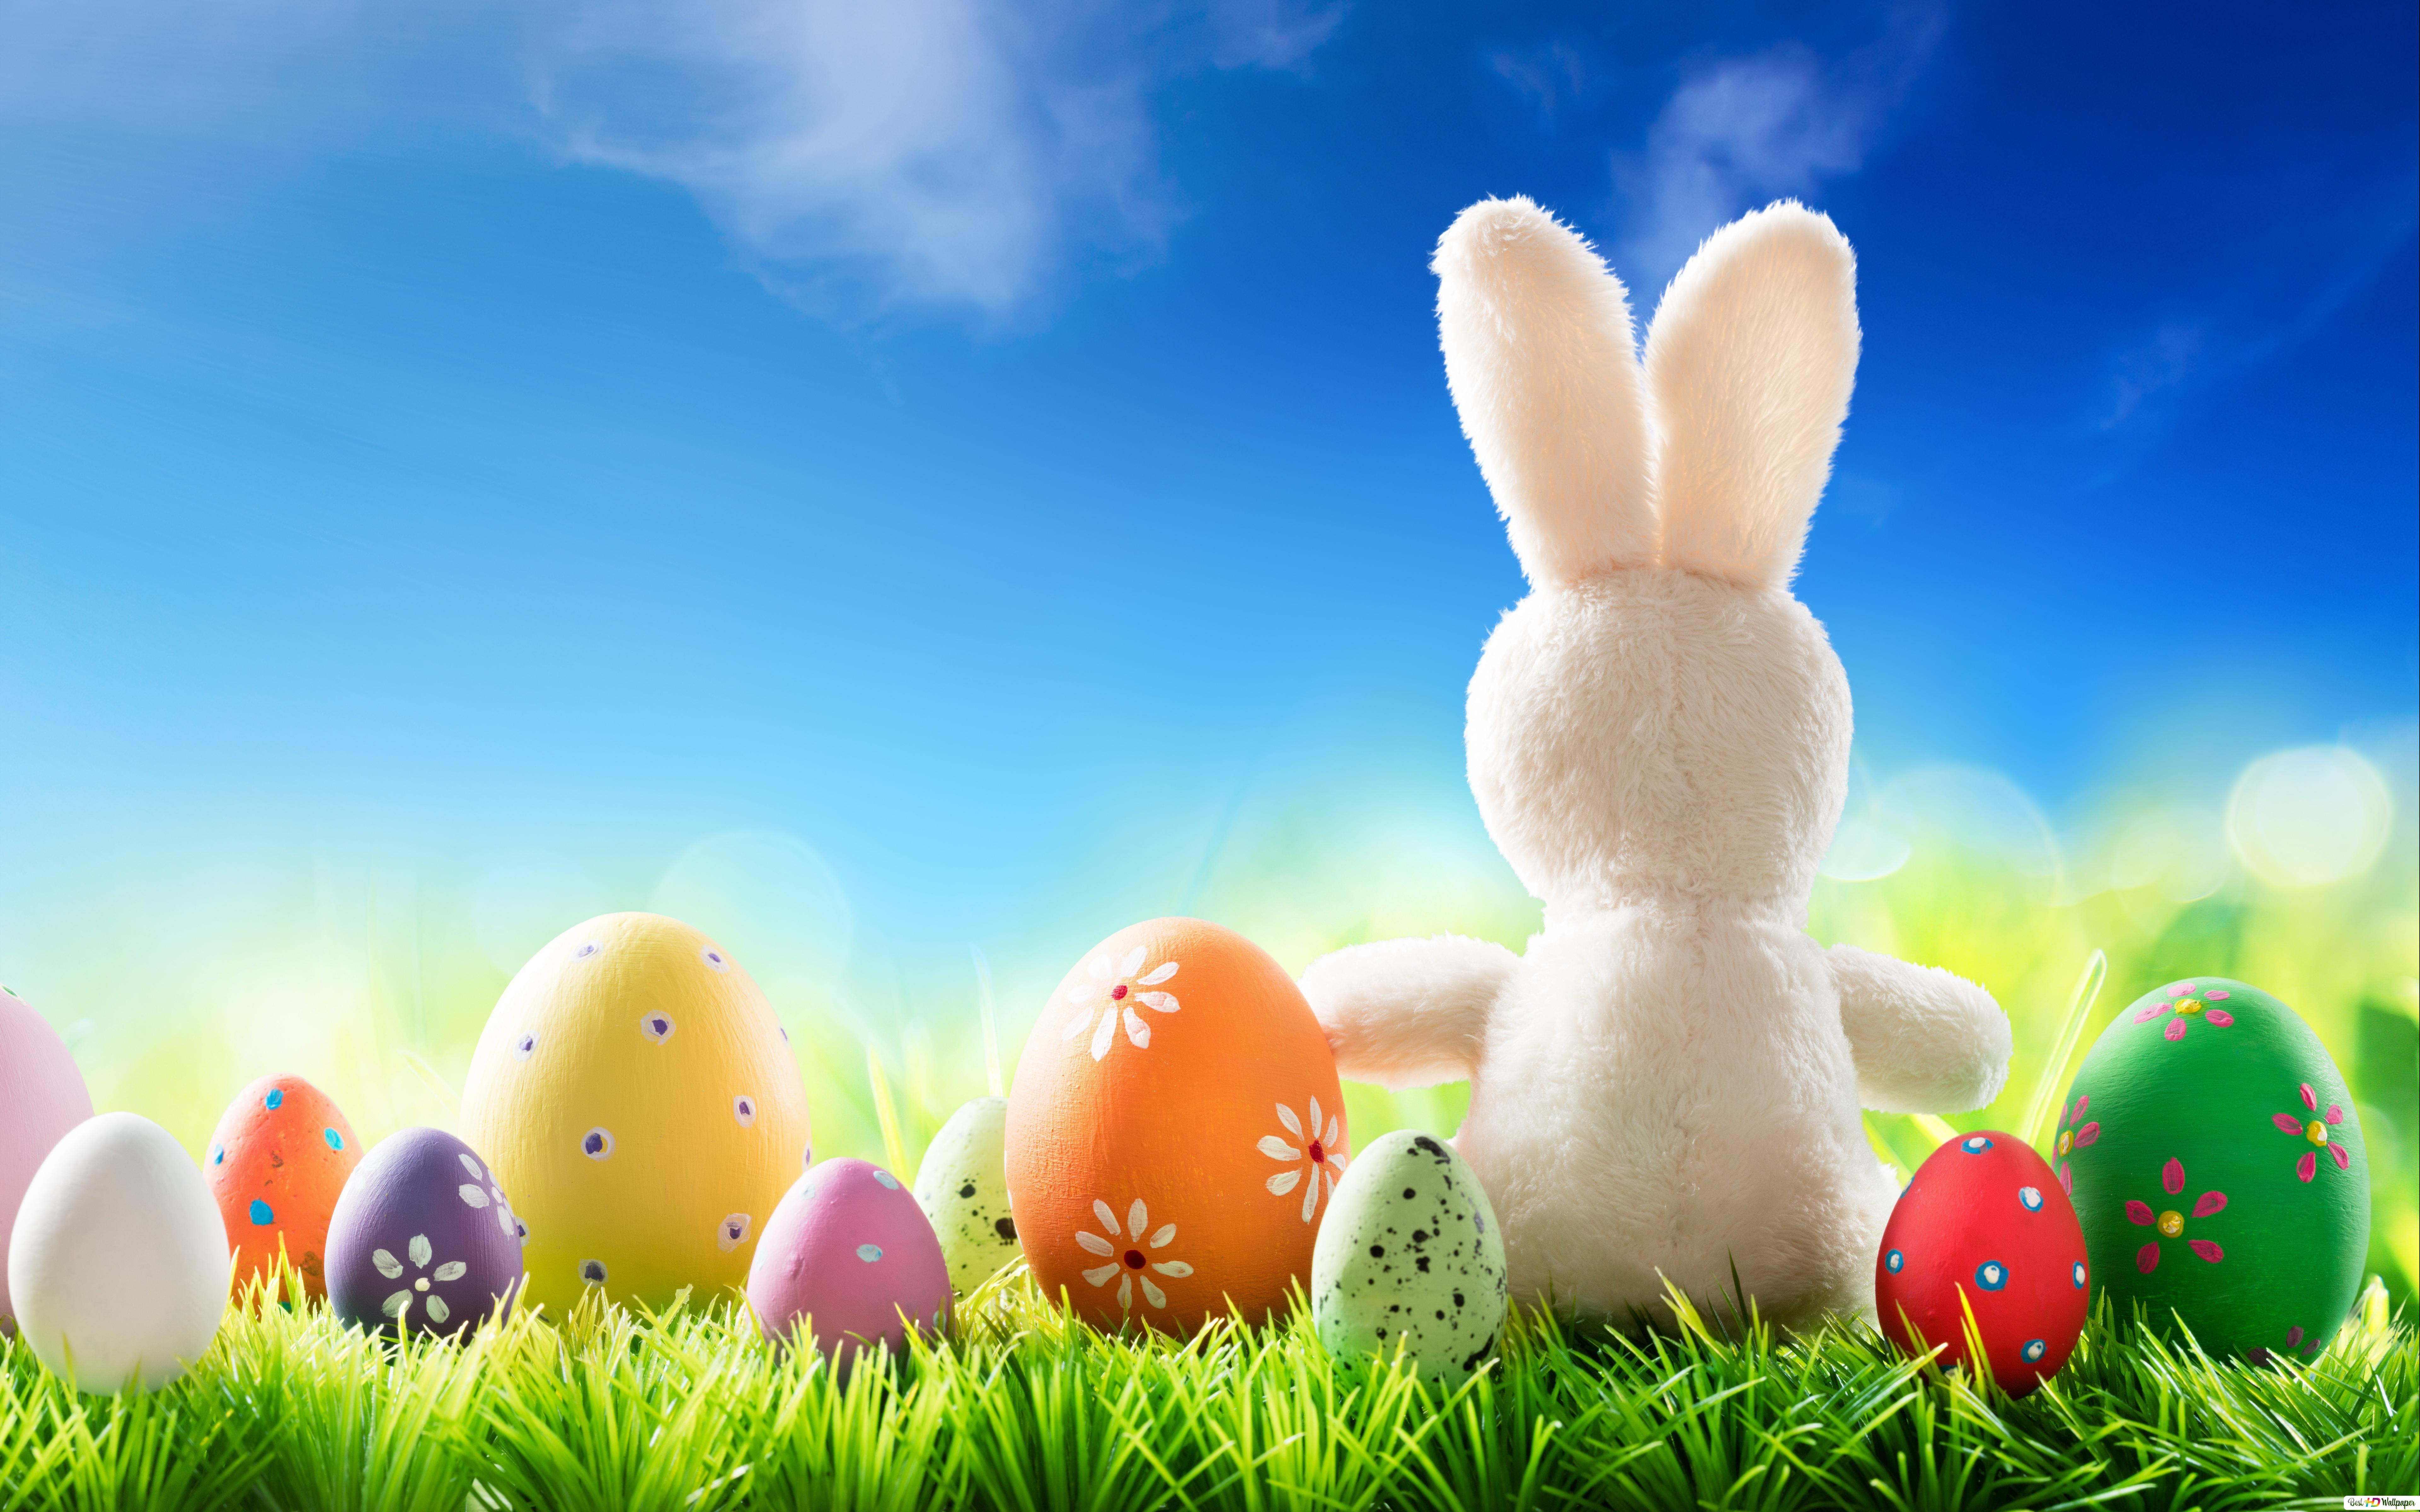 Easter Bunny Eggs Hd Wallpaper Download